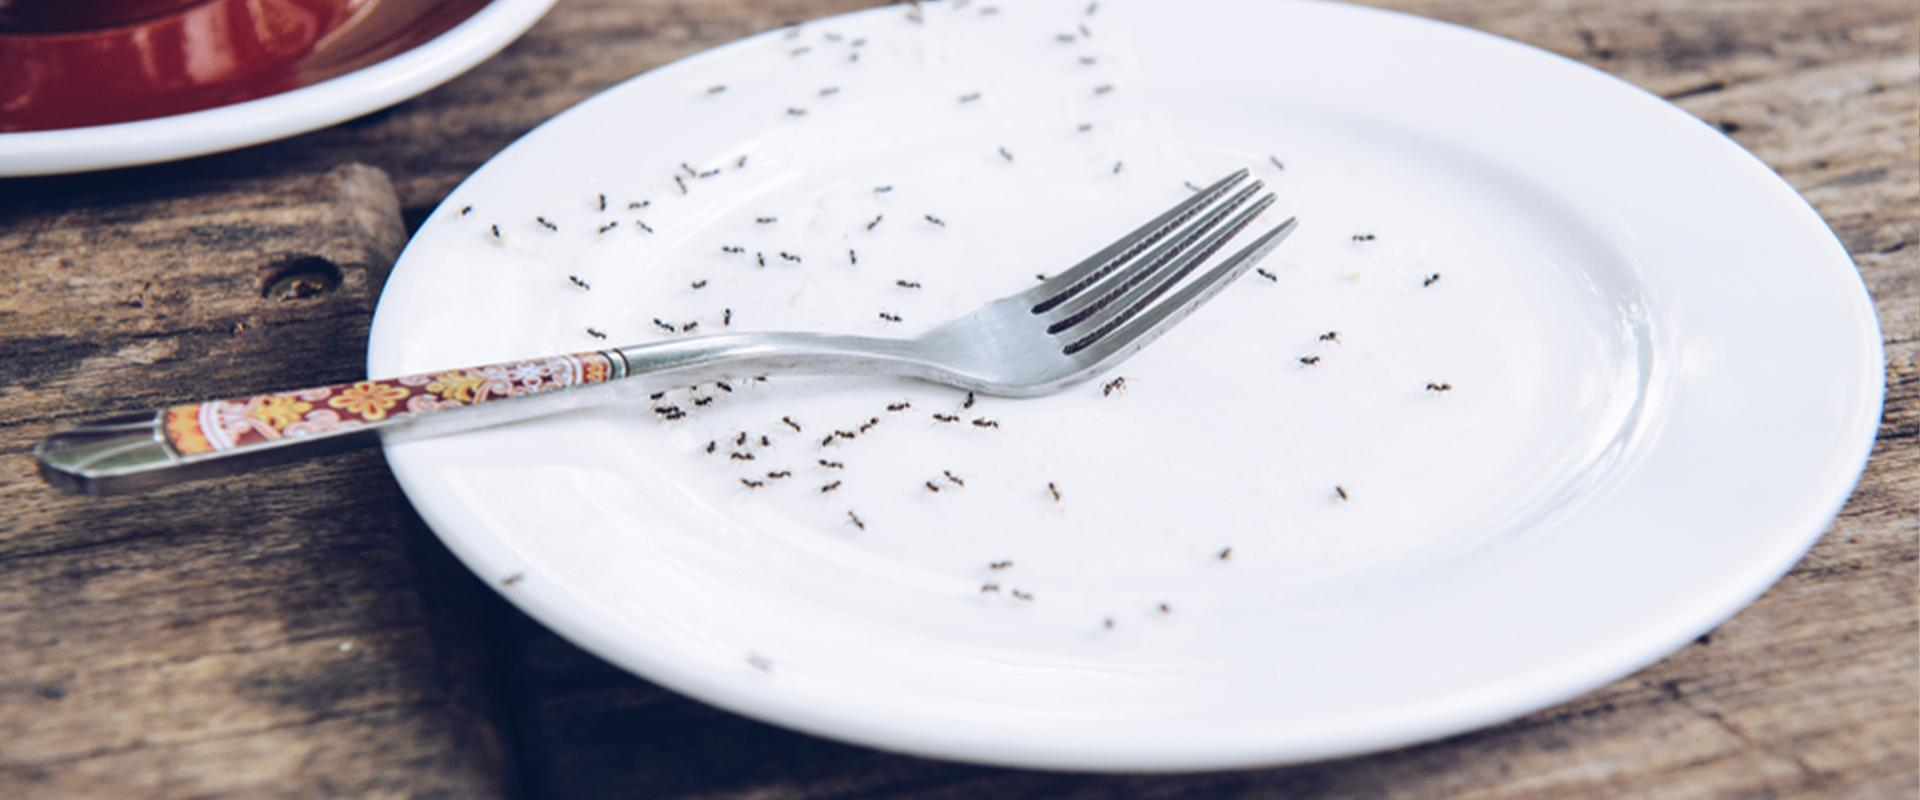 ants on a plate  in idaho falls